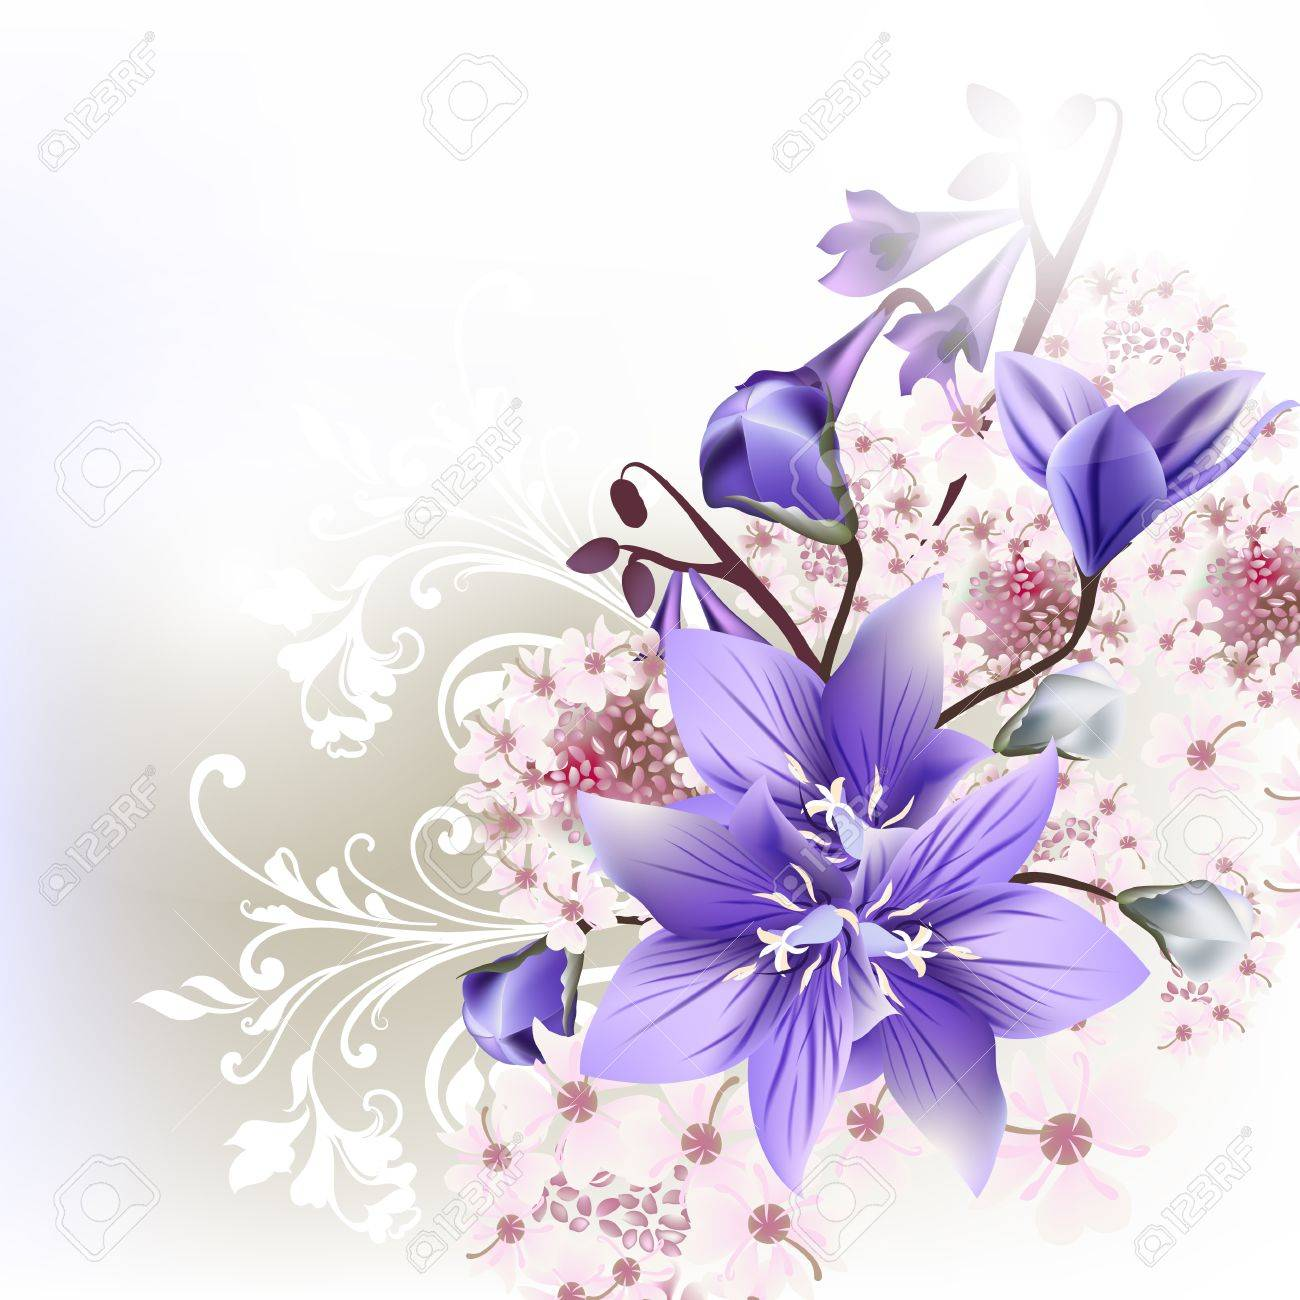 Floral Clear Background Blue Bells Flowers Royalty Free Cliparts ...